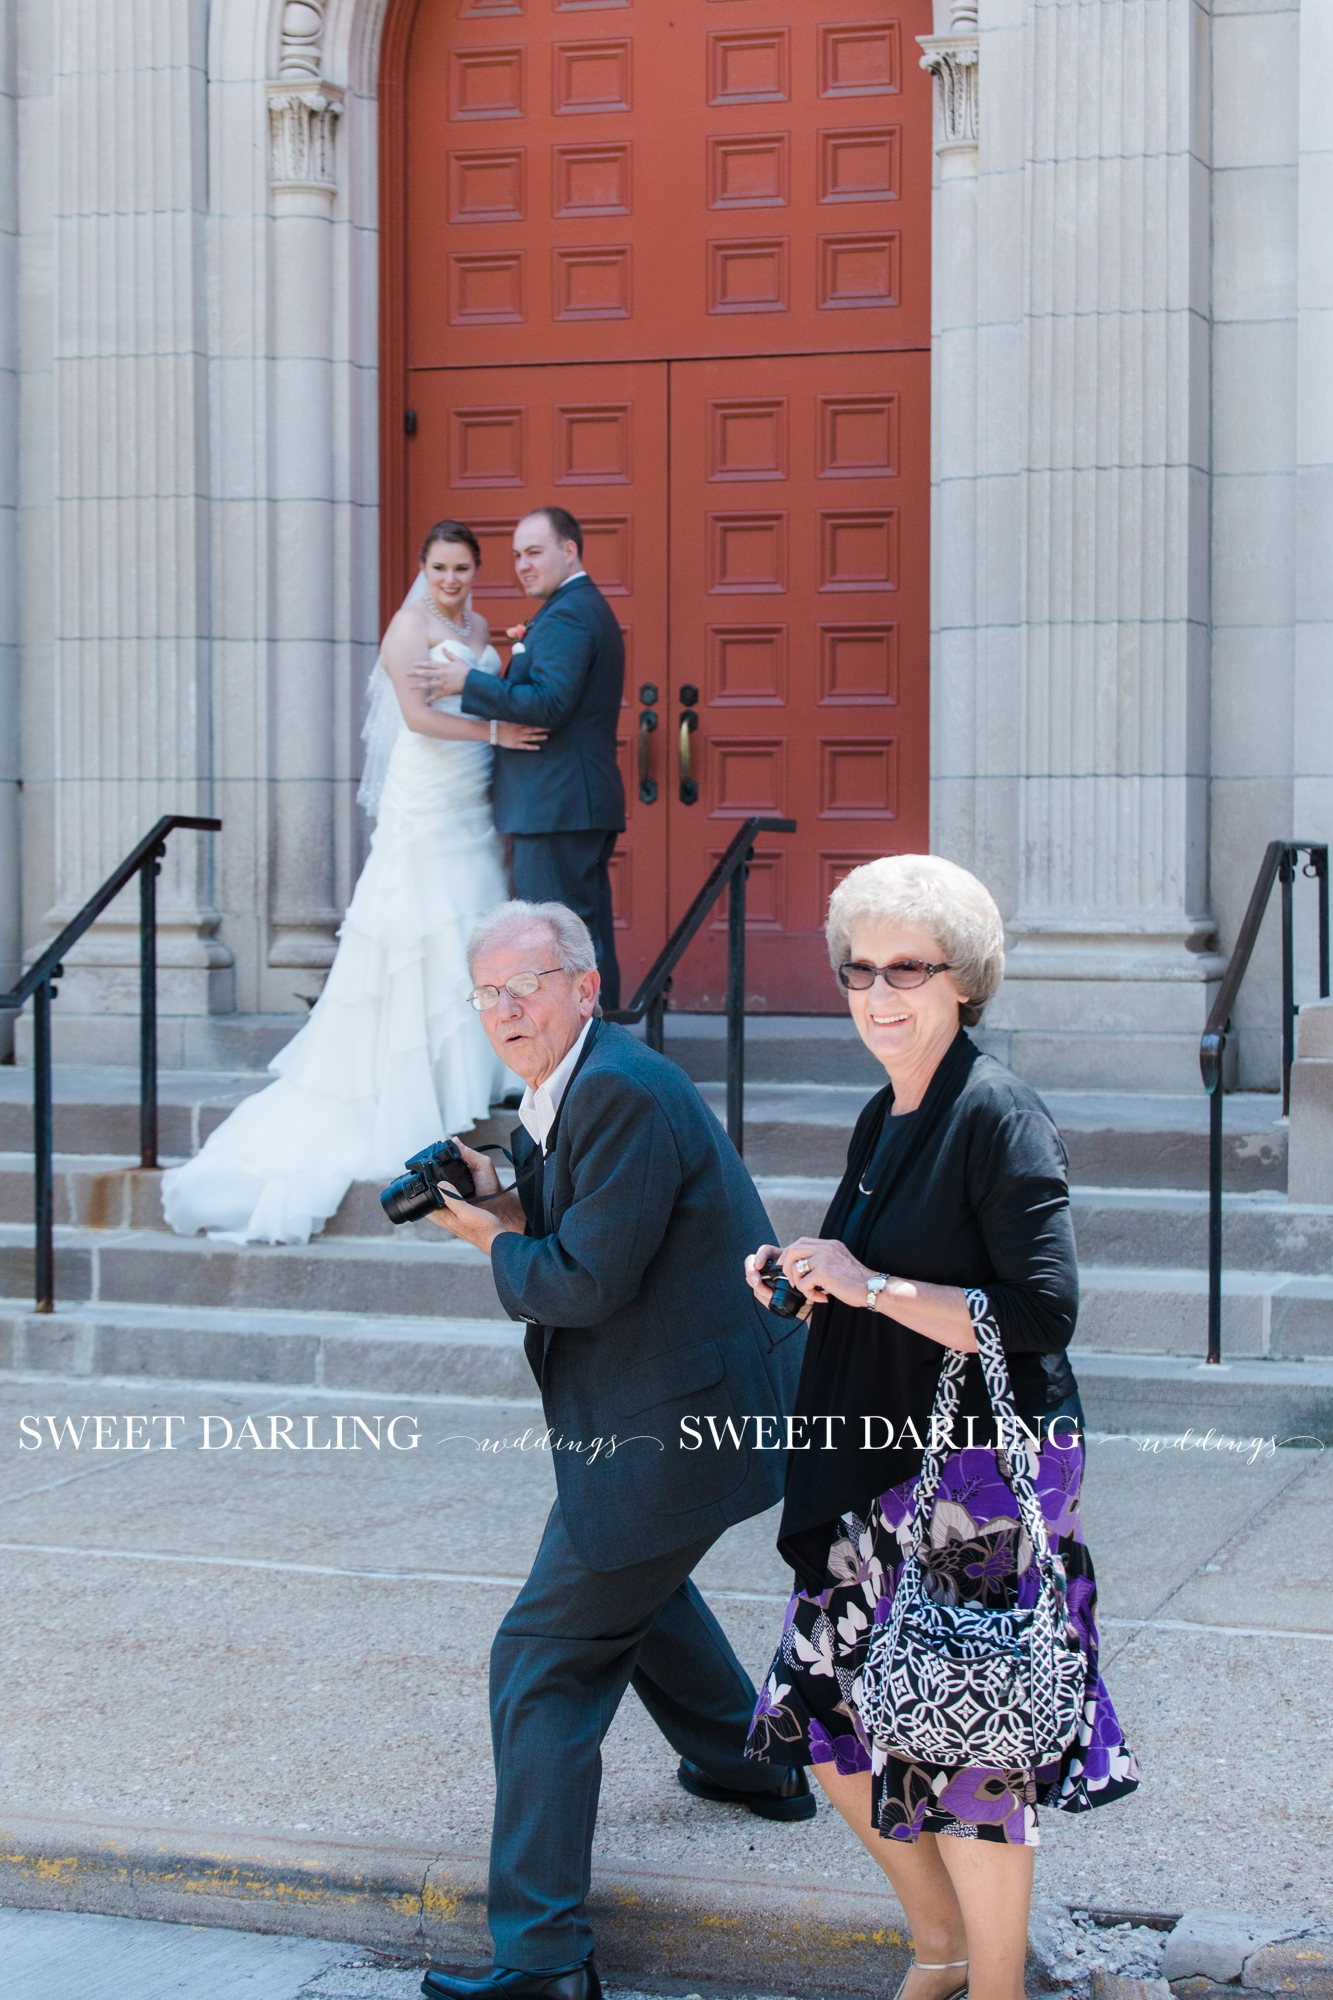 Jeremy's great aunt and uncle, are the cutest paparazzi we've seen!